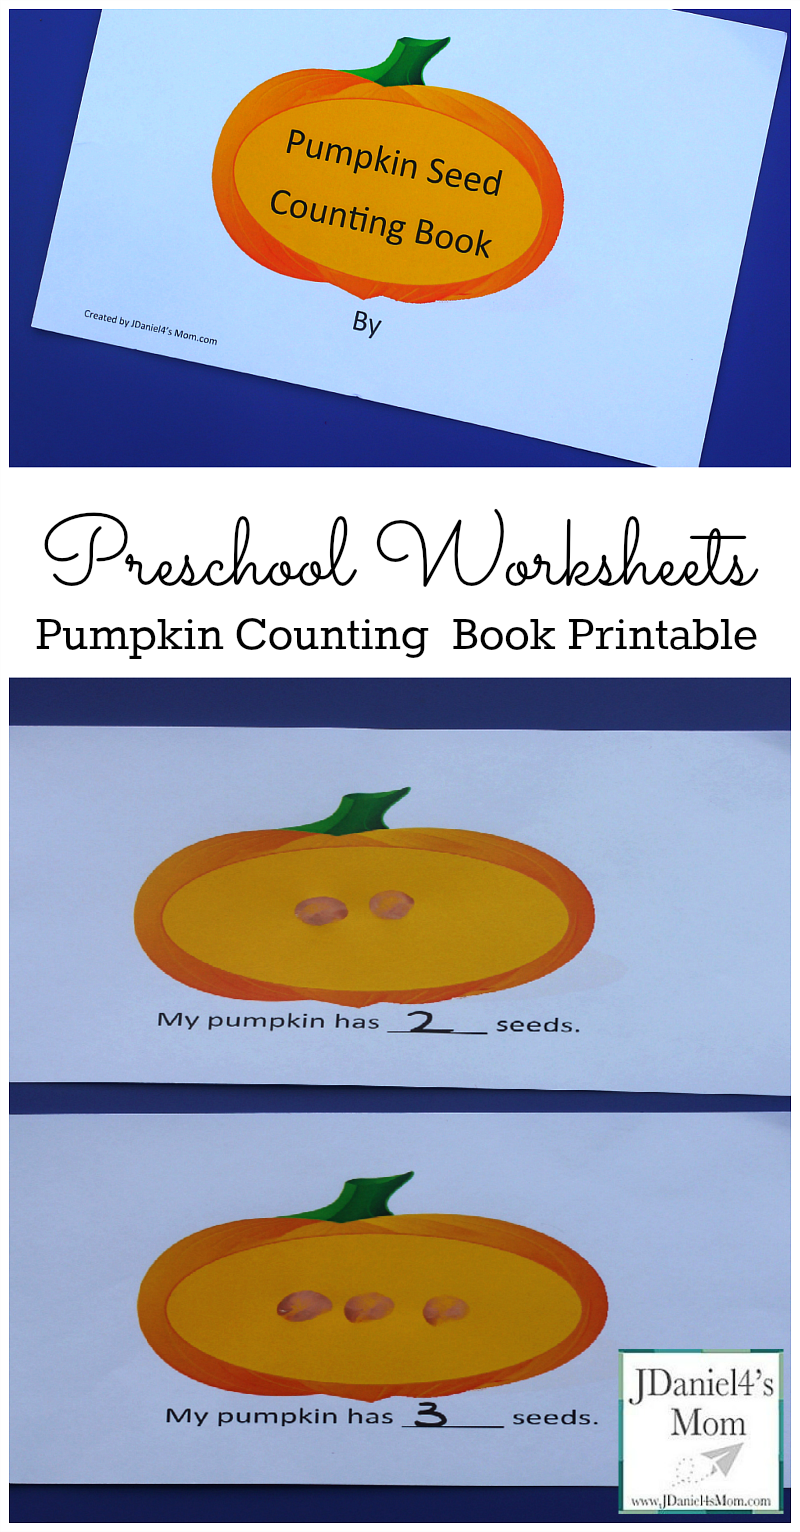 Preschool Worksheets Pumpkin Counting Book Printable